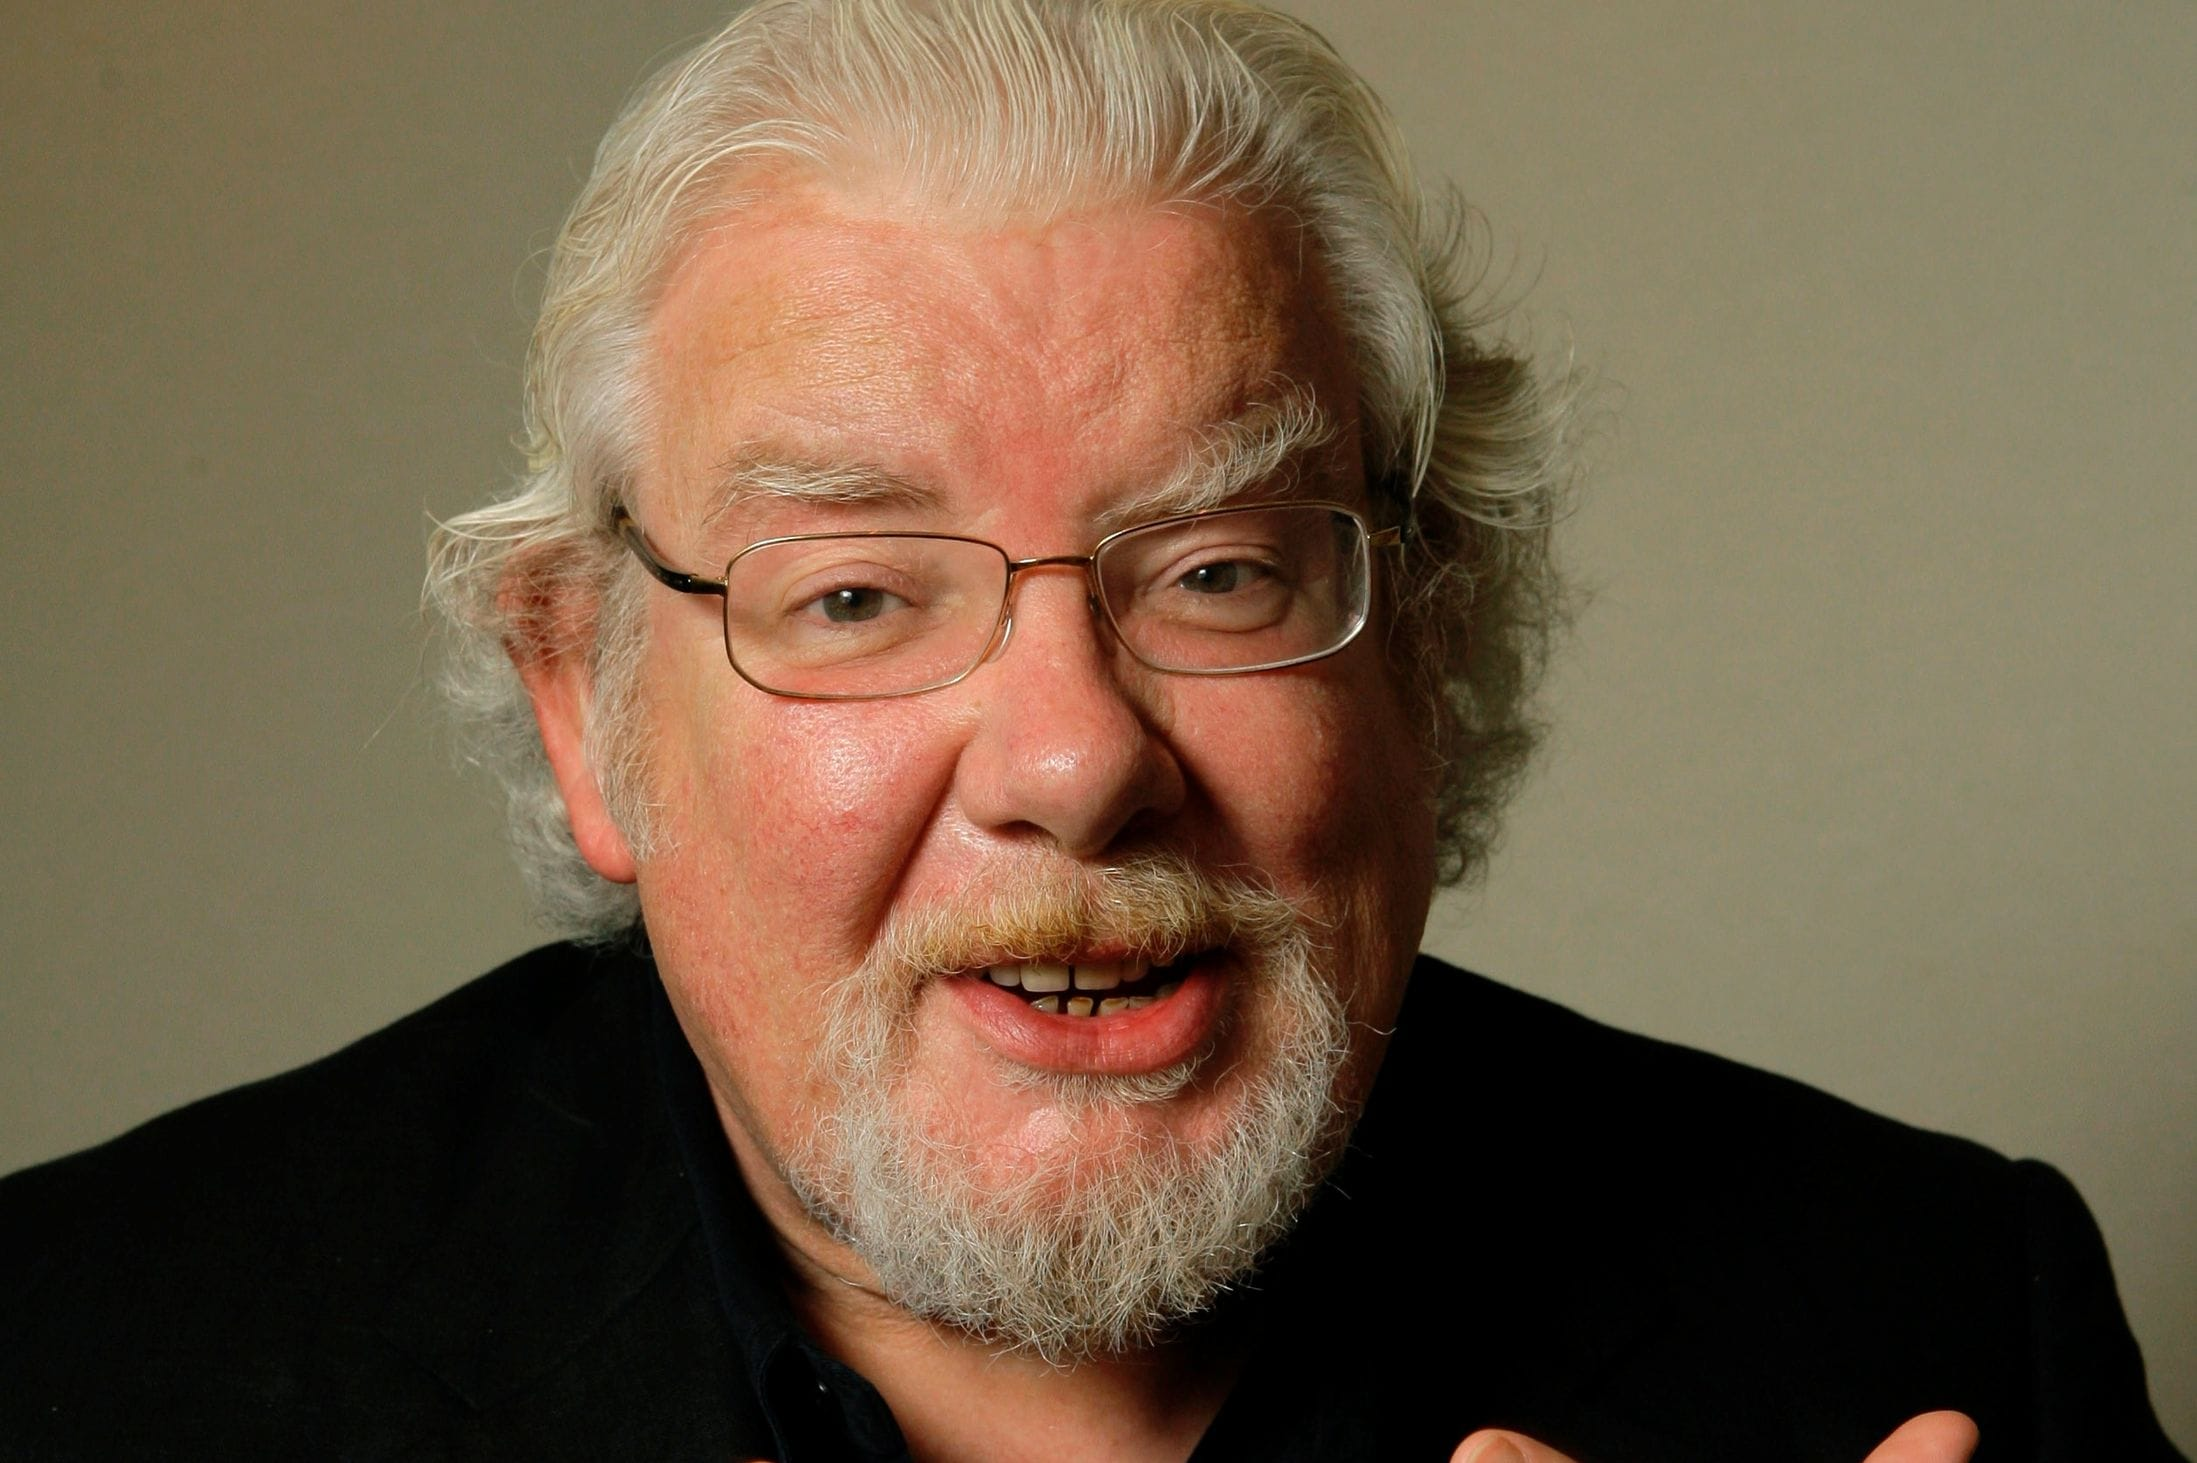 Richard Griffiths HQ wallpapers